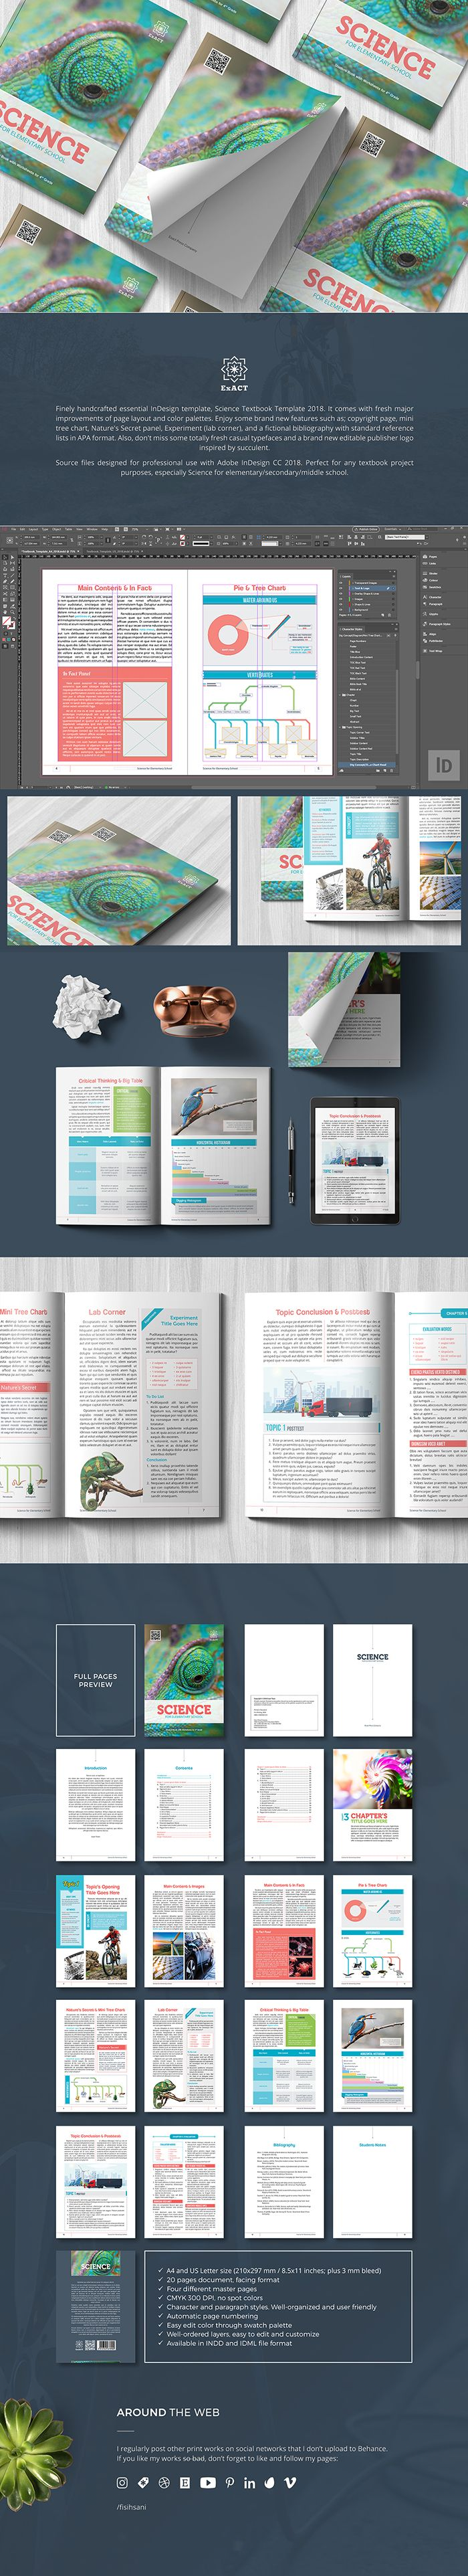 finely handcrafted essential indesign template science textbook